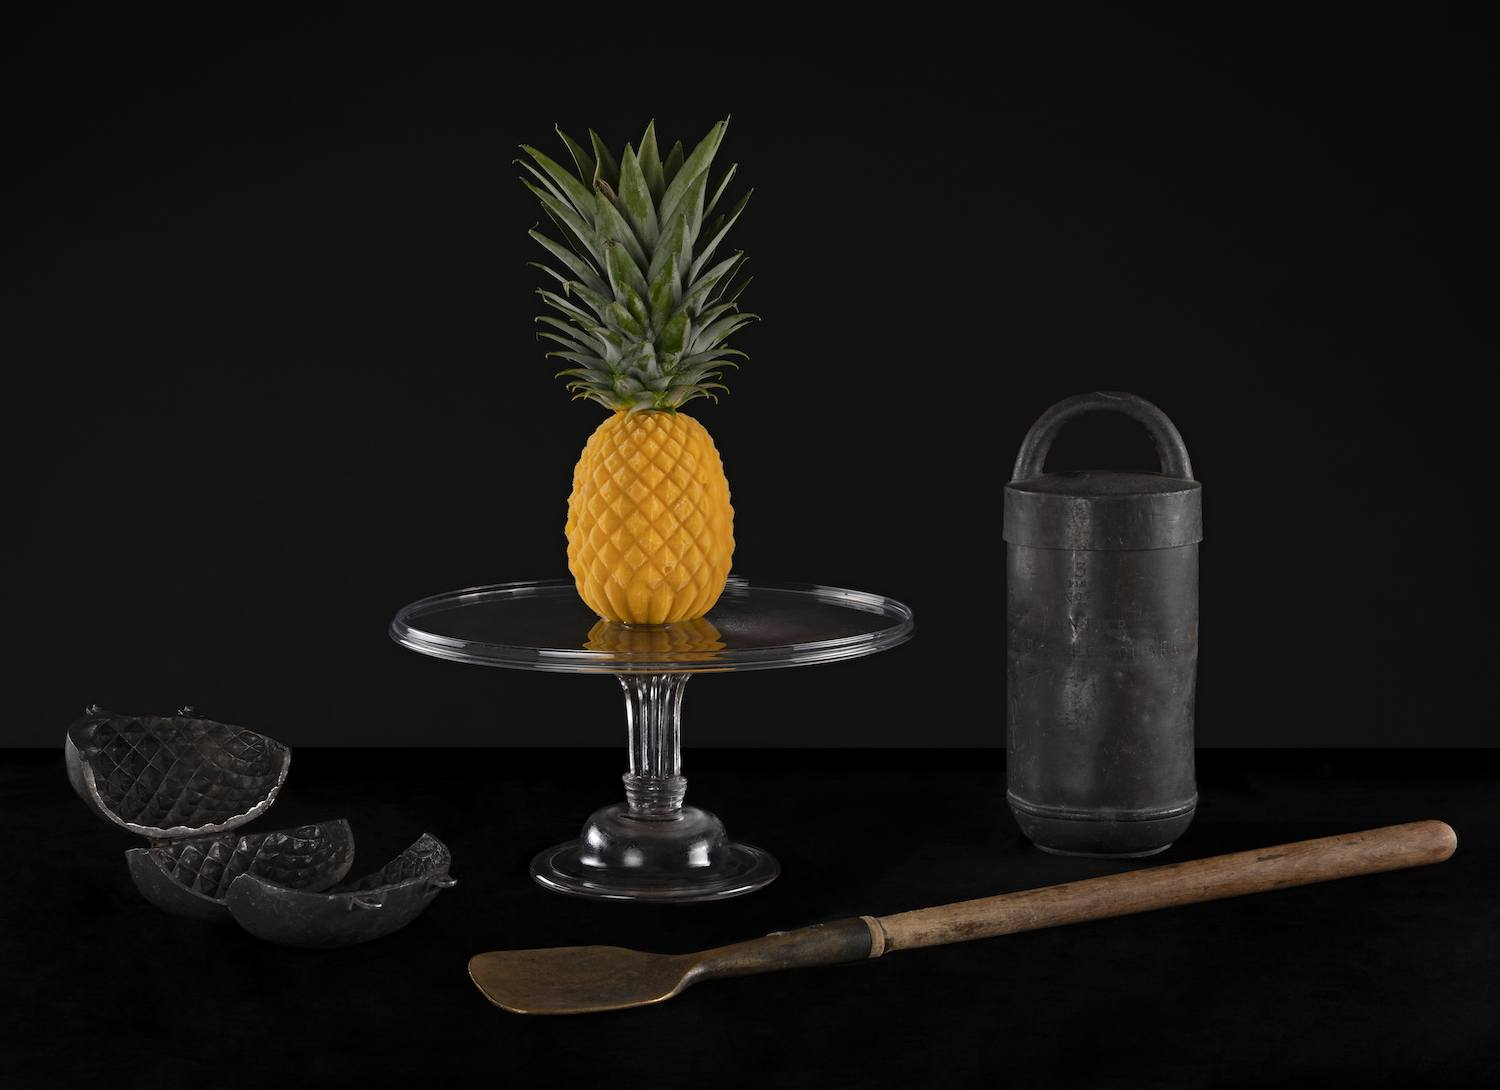 The pineapple is an essential motif of the exhibition.